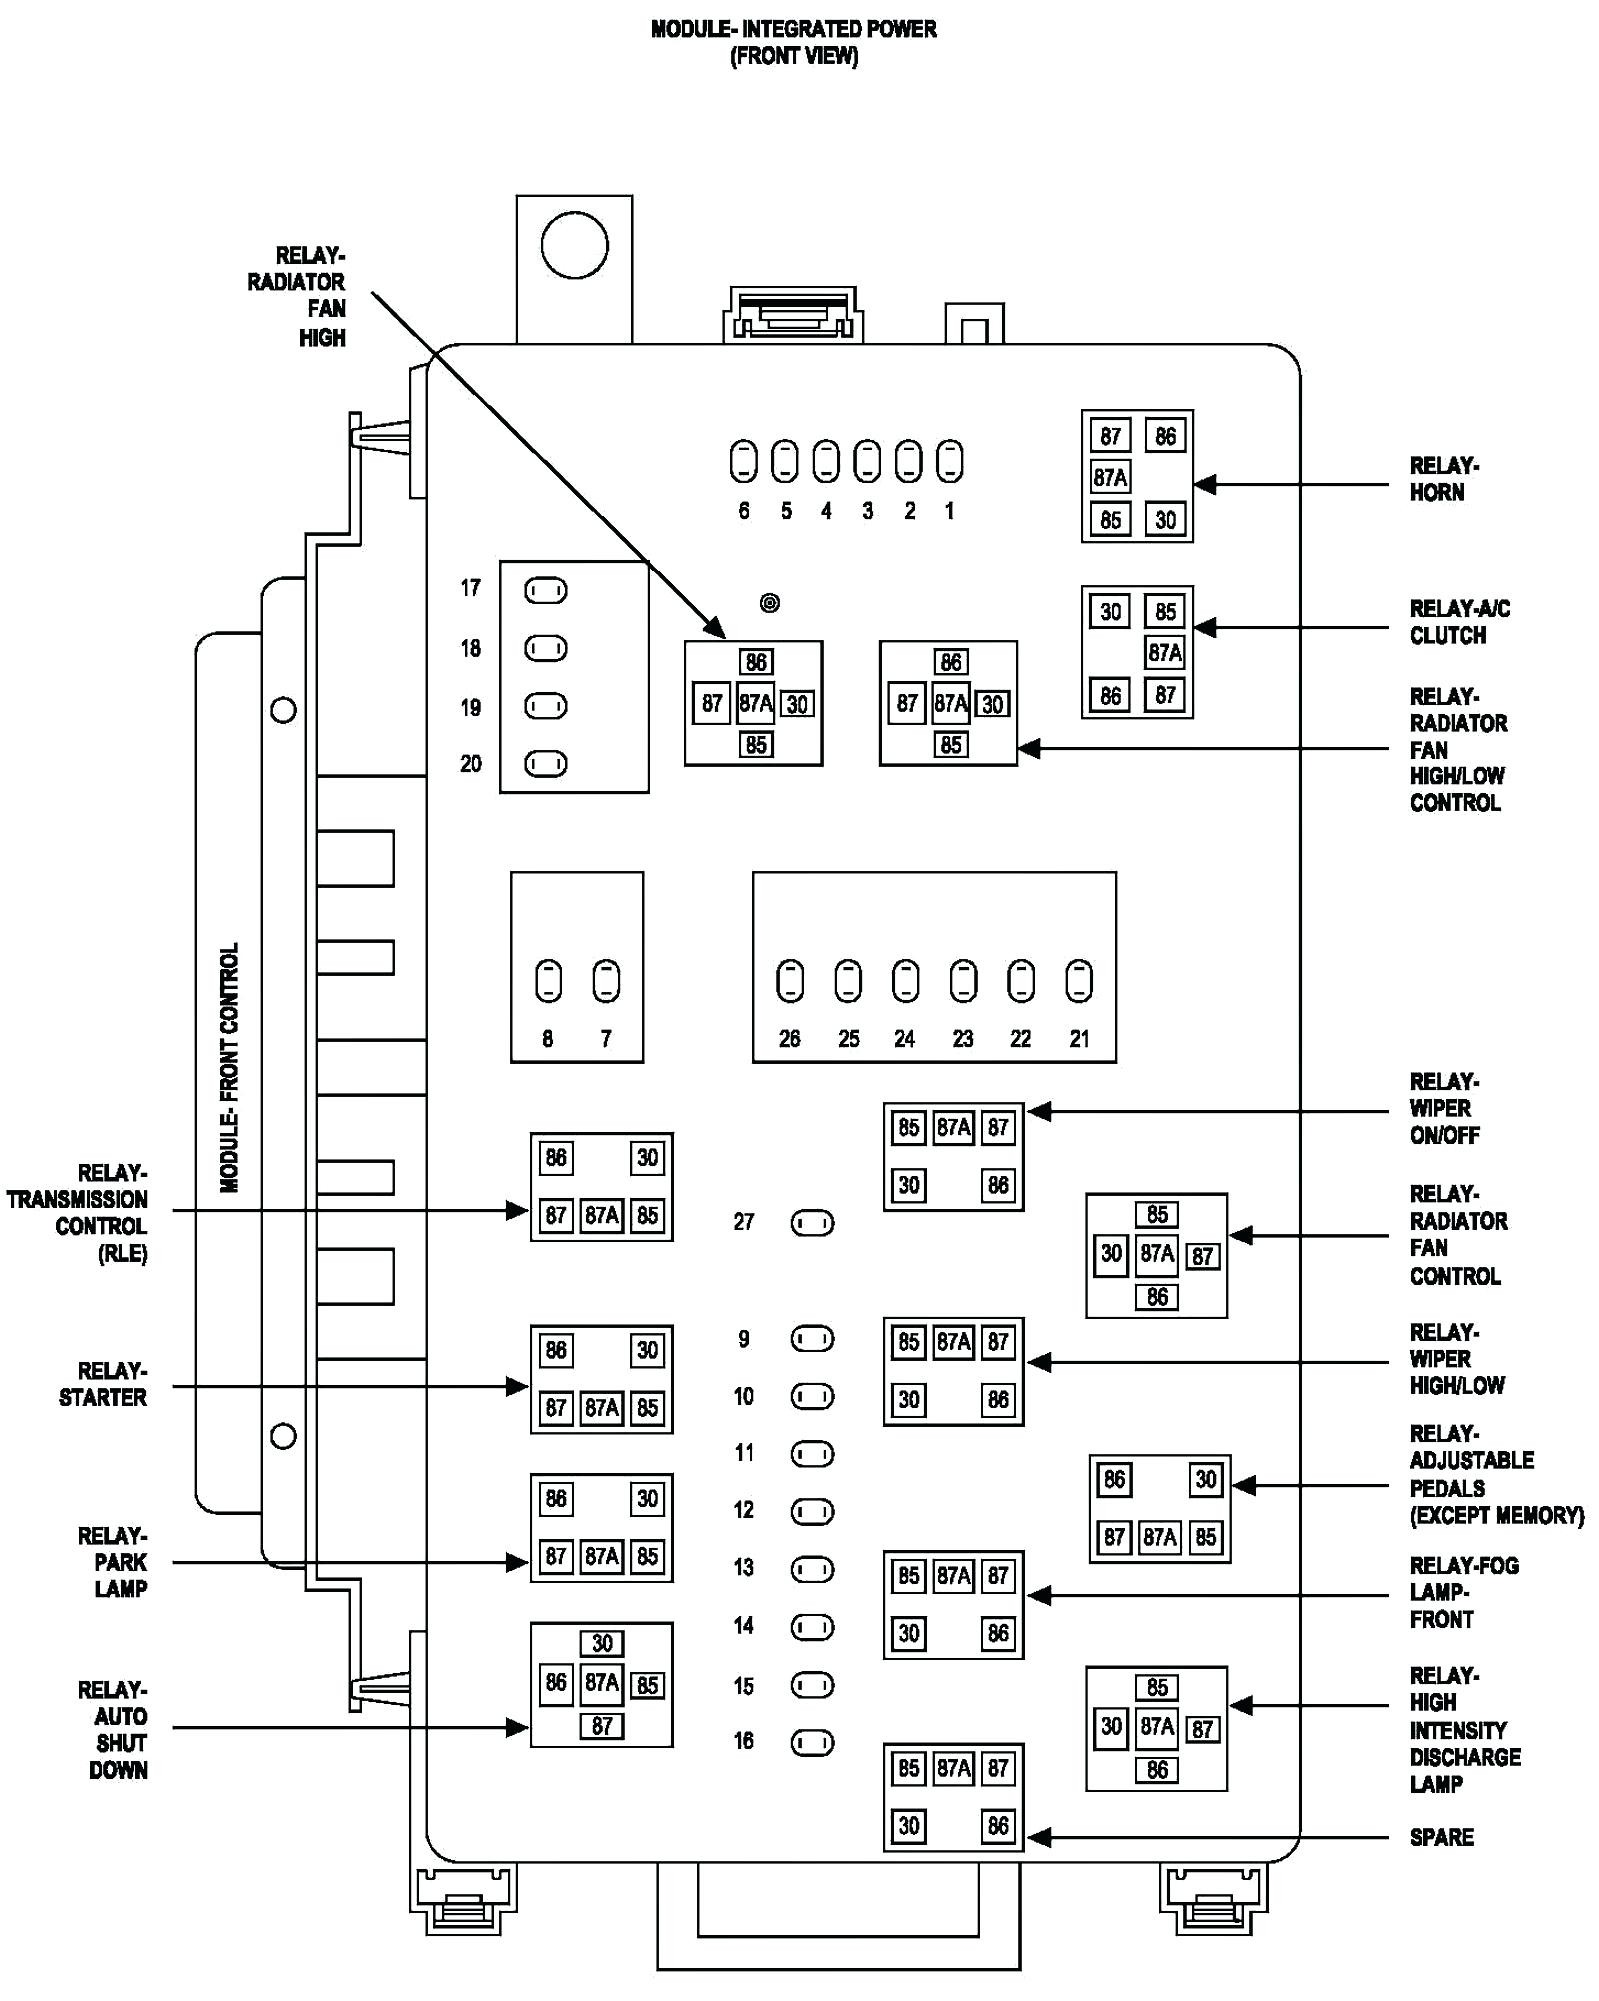 diagram] fuse box diagram for 2007 chrysler 300 full version hd quality chrysler  300 - forexdiagrams.offerteroccaraso.it  offerteroccaraso.it